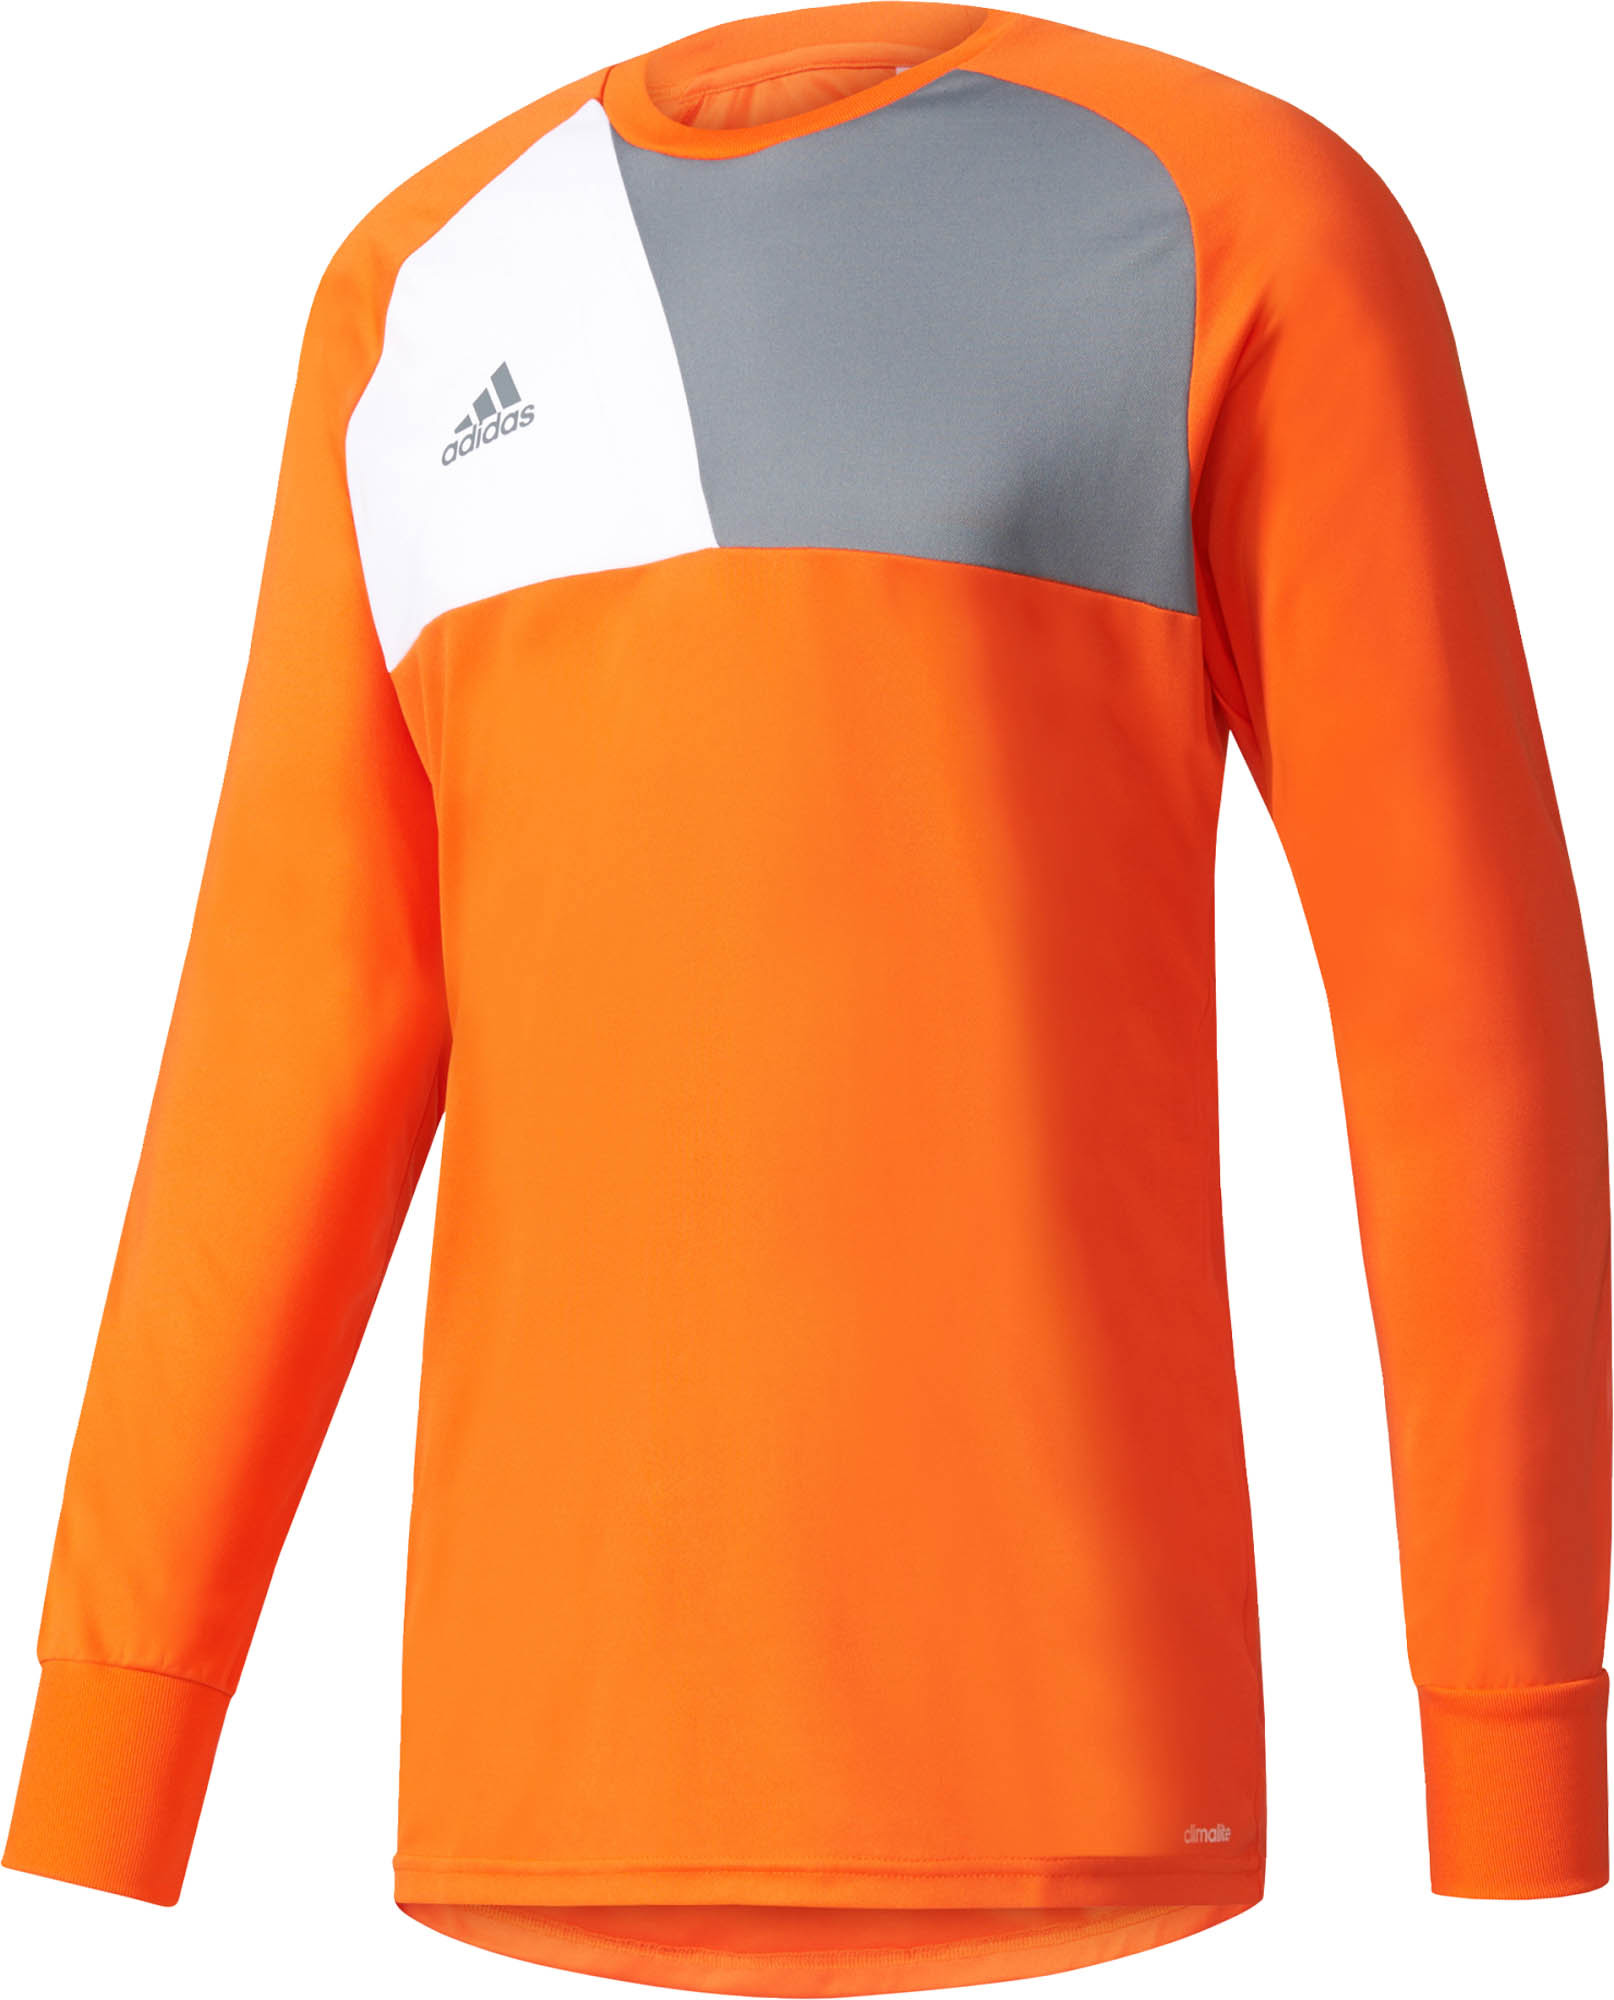 d784681b2 adidas Assita 17 Goalkeeper Jersey – Orange White